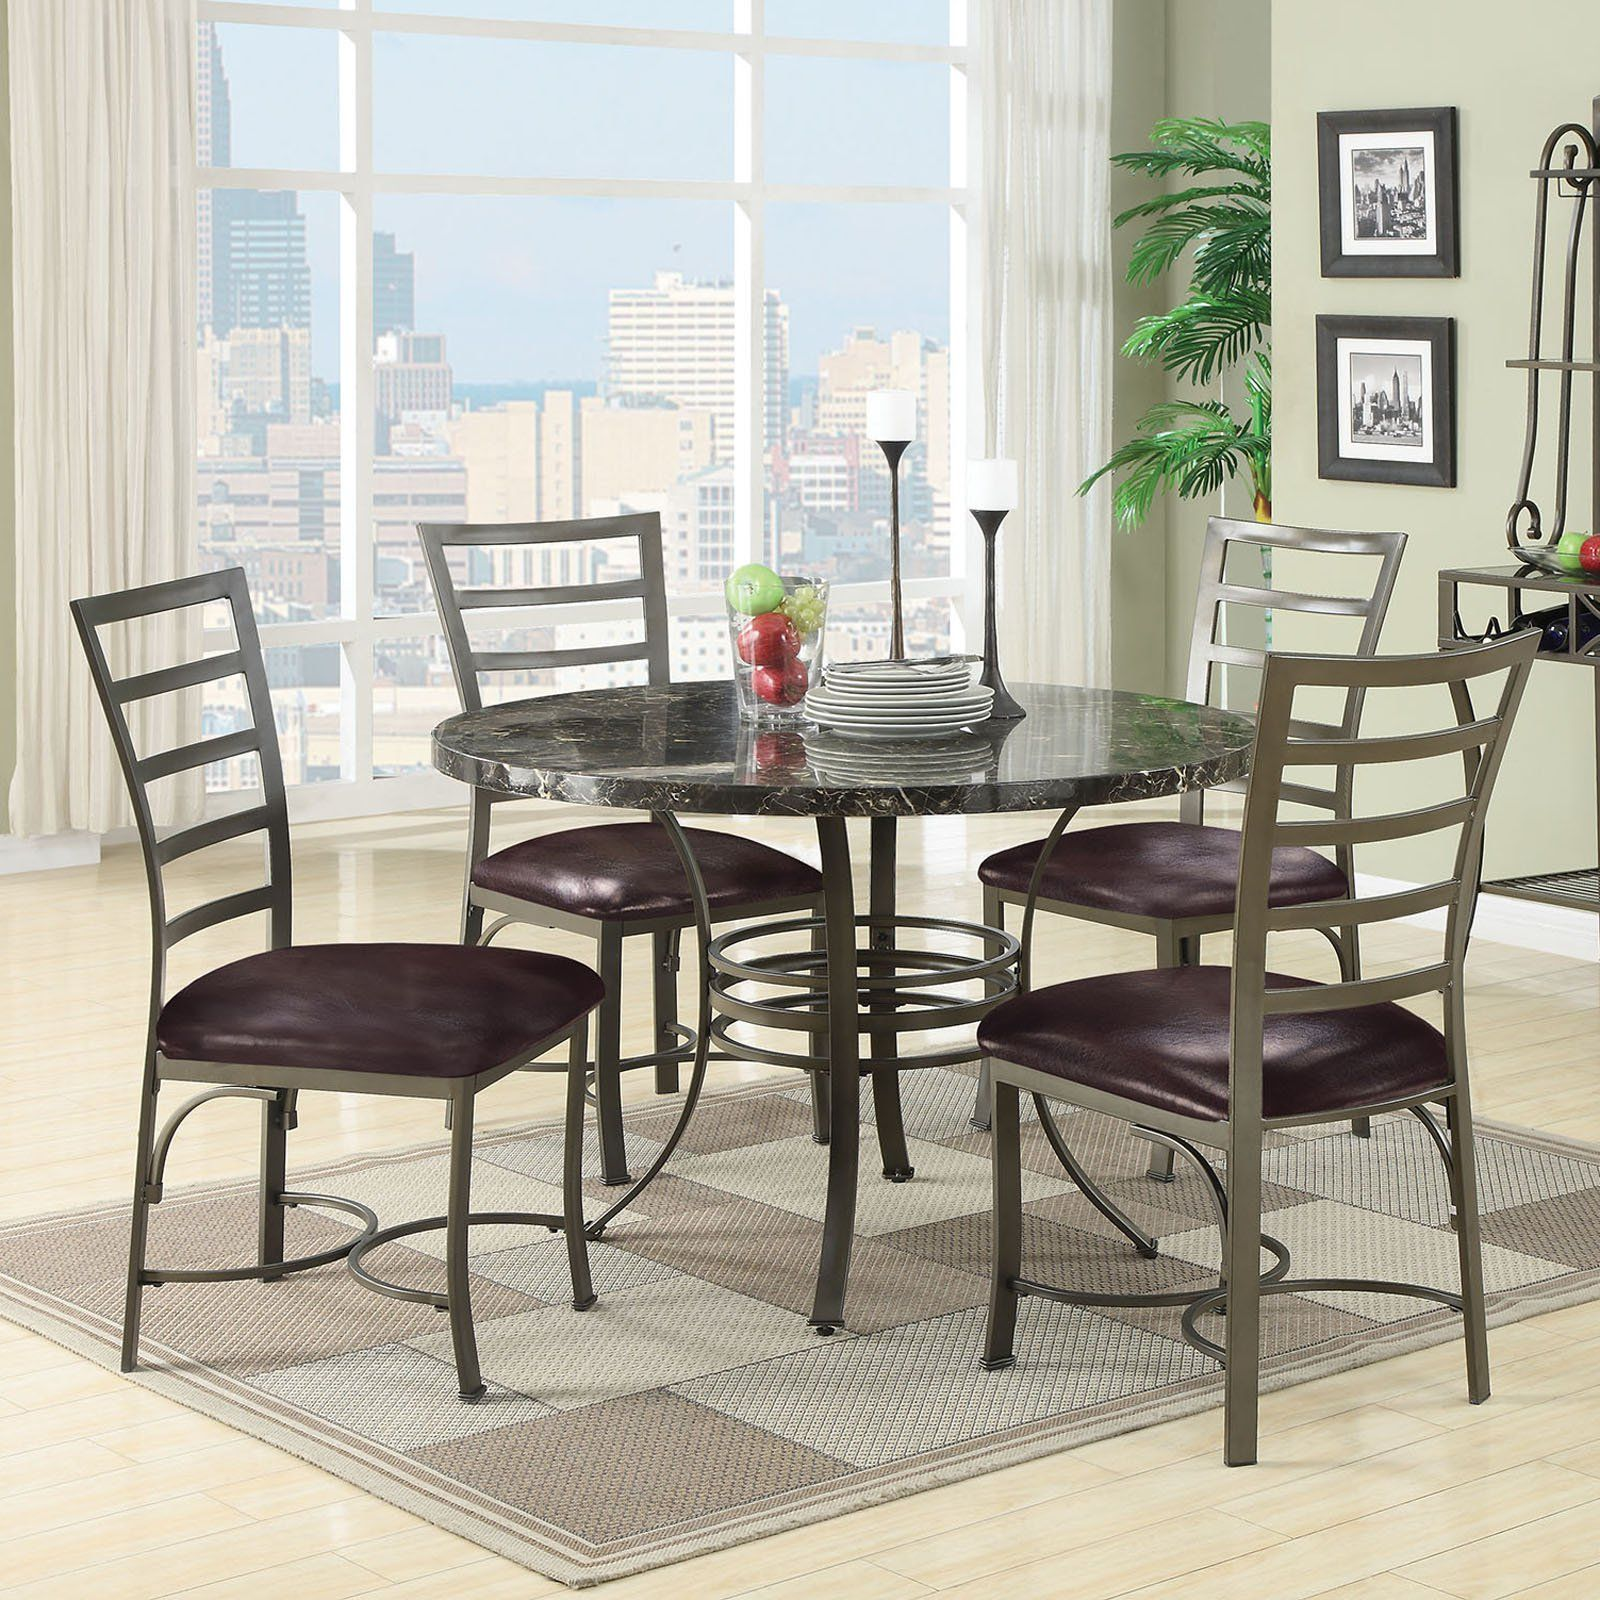 Acme Furniture Daisy 5 Piece Round Faux Marble Dining Table Set Simple Acme Dining Room Set Decorating Design